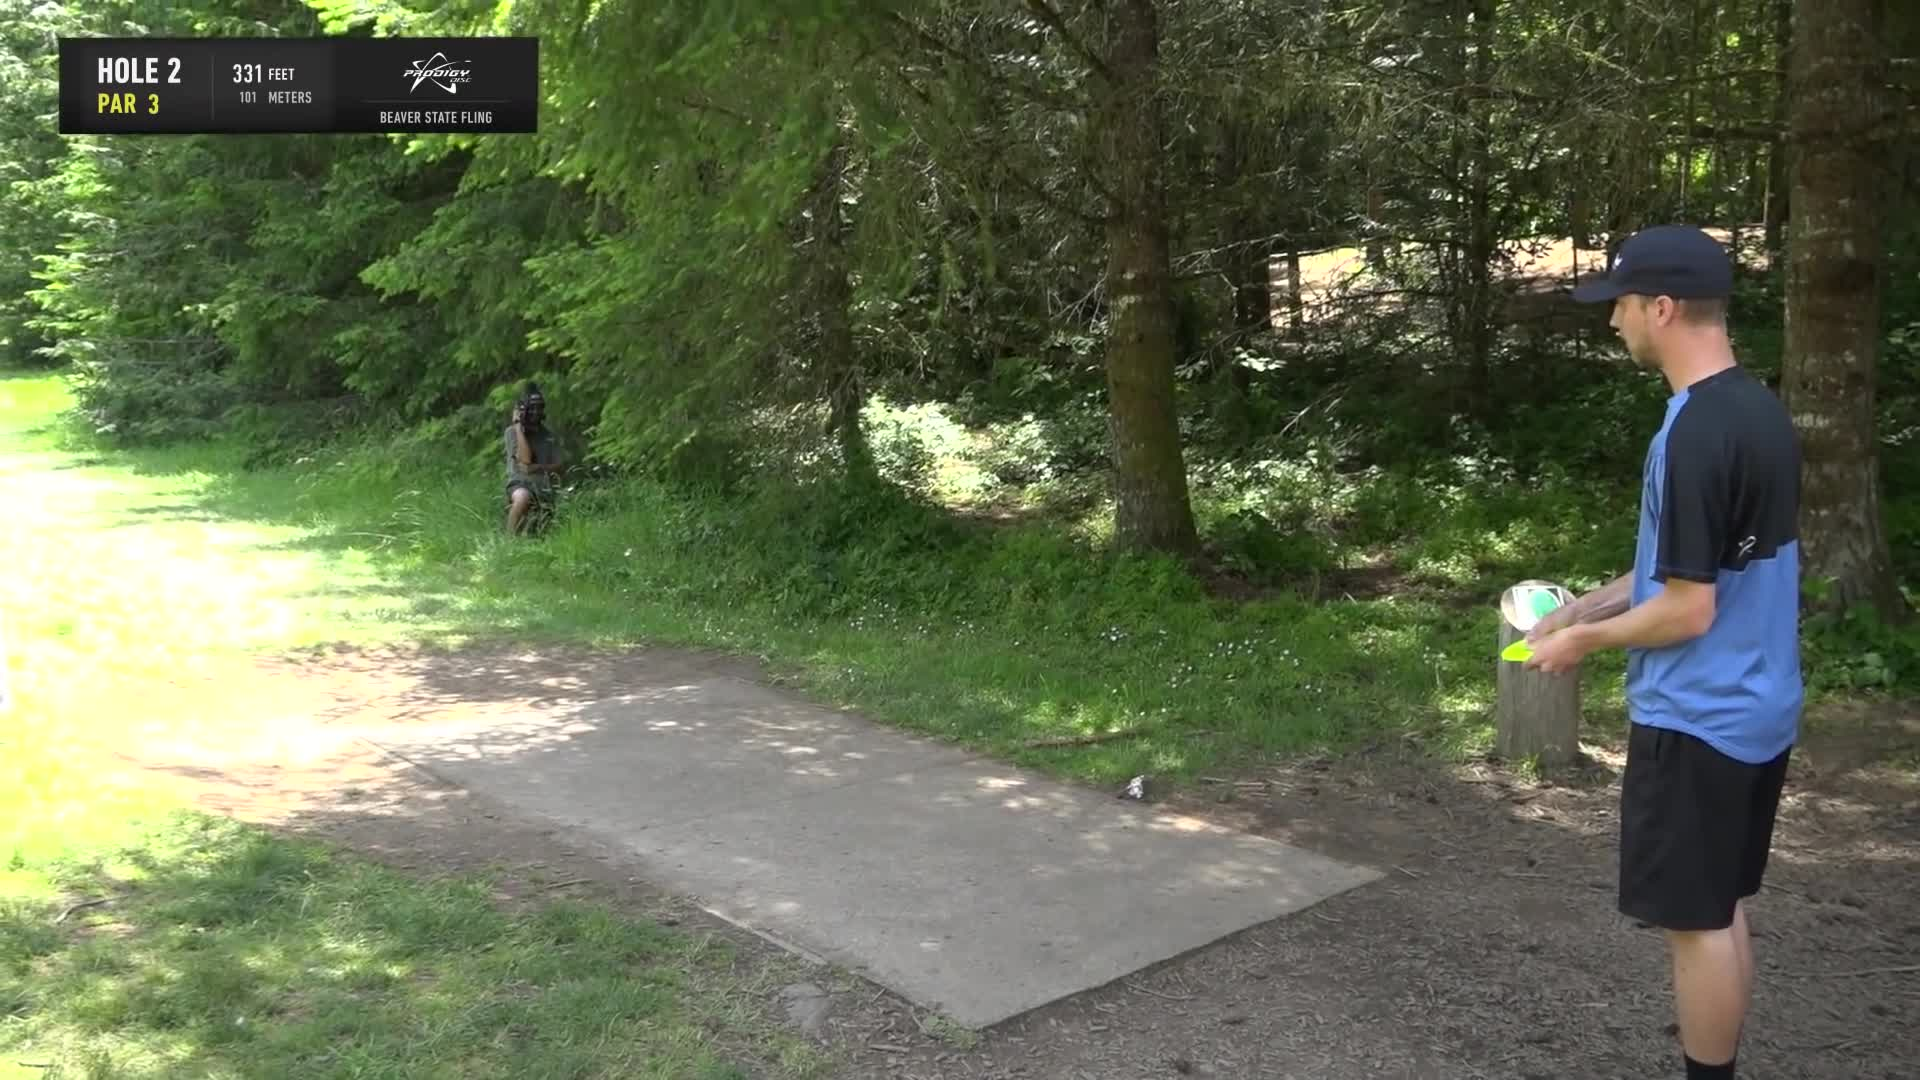 ace, bsf, dela, delaveaga, dgpt, dgwt, disc, disc golf, frolf, hole in one, masters cup, mcbeast, milo, nate sexton, nt, paul mcbeth, pdga, simon lizotte, tournament, worlds, 2019 Beaver State Fling - Final Round, Part 1- Seppo Paju hole 2 drive GIFs